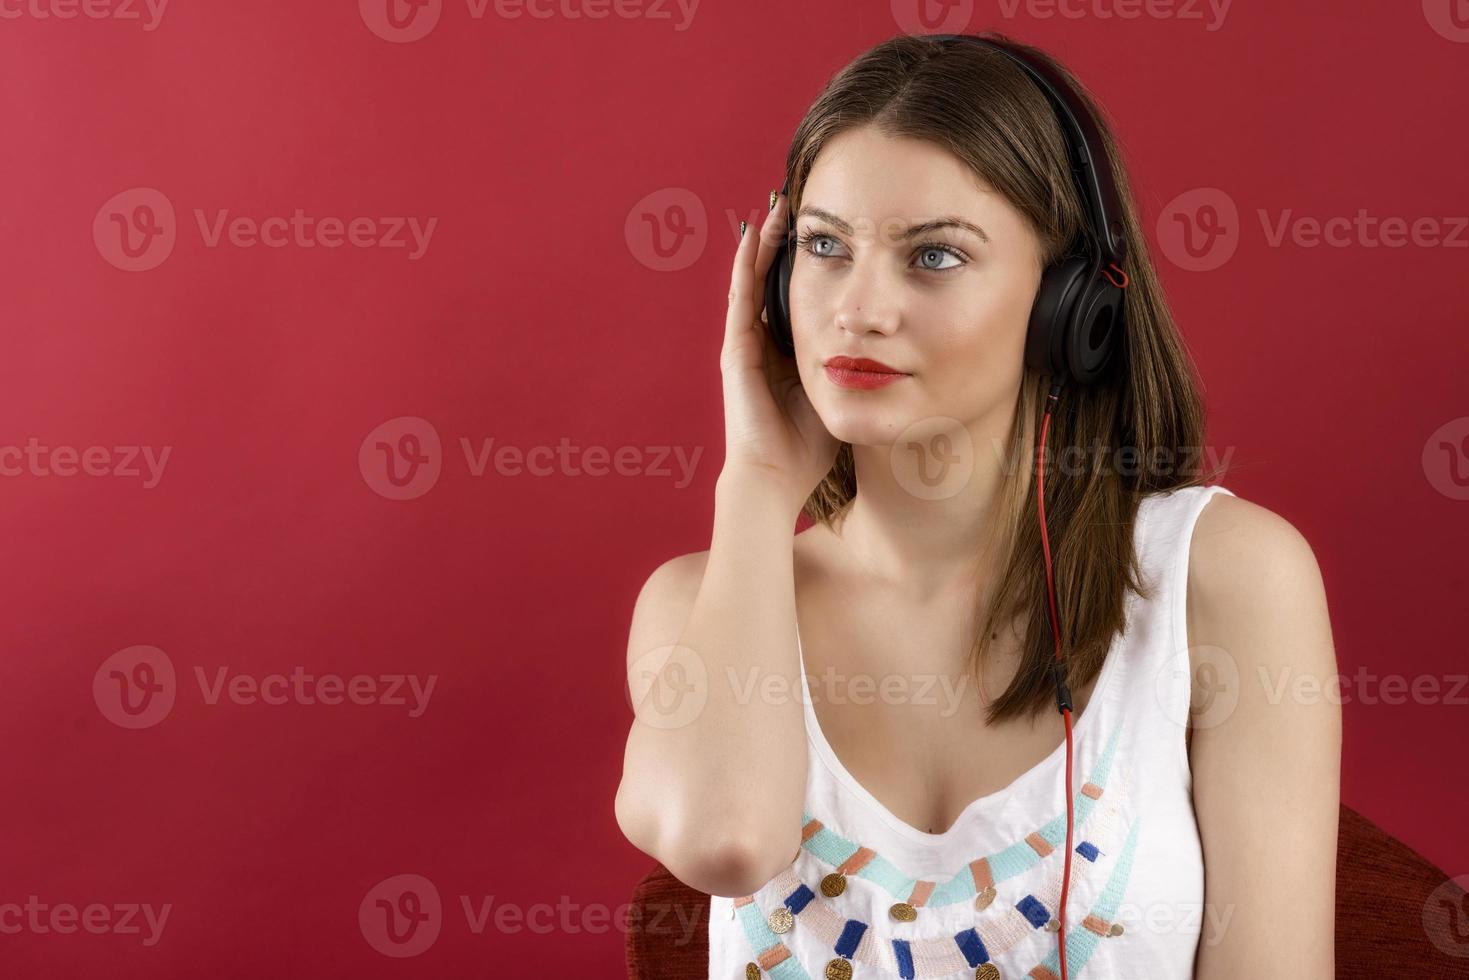 Headphones music woman dancing listening to music on mp3 player photo